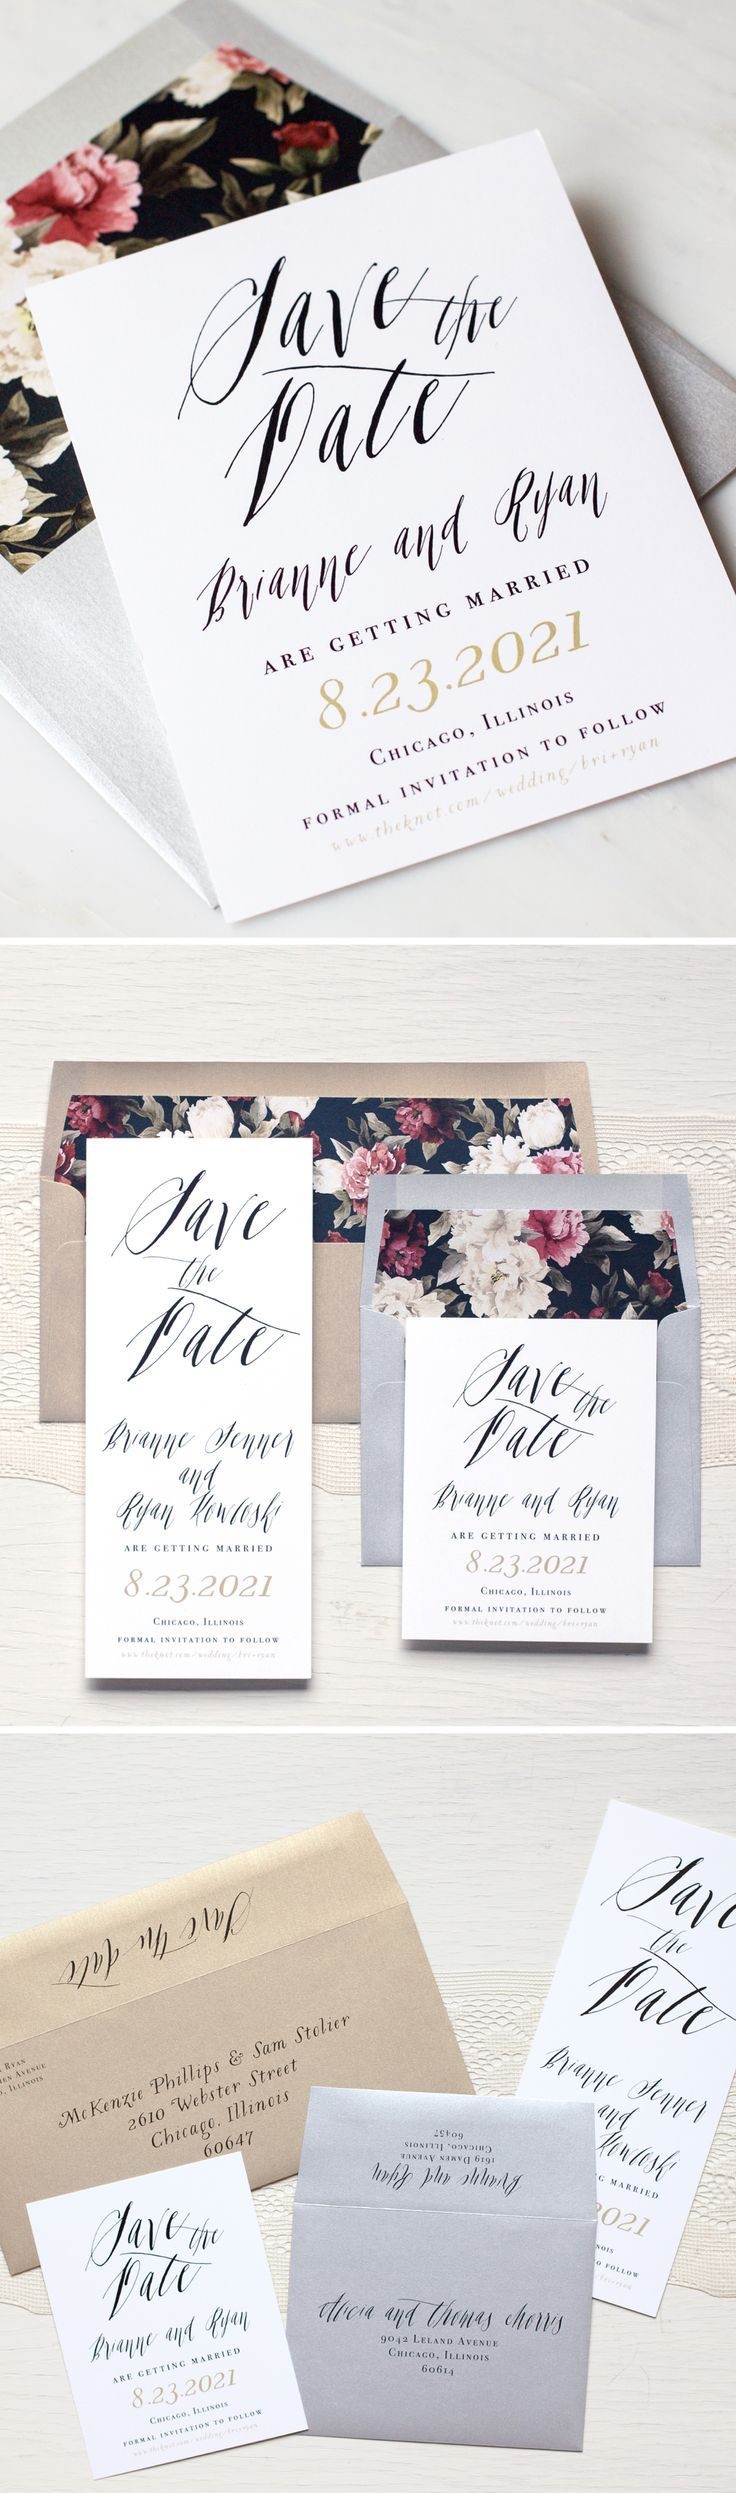 sample wording for save the date wedding cards%0A Modern Boho Save the Dates